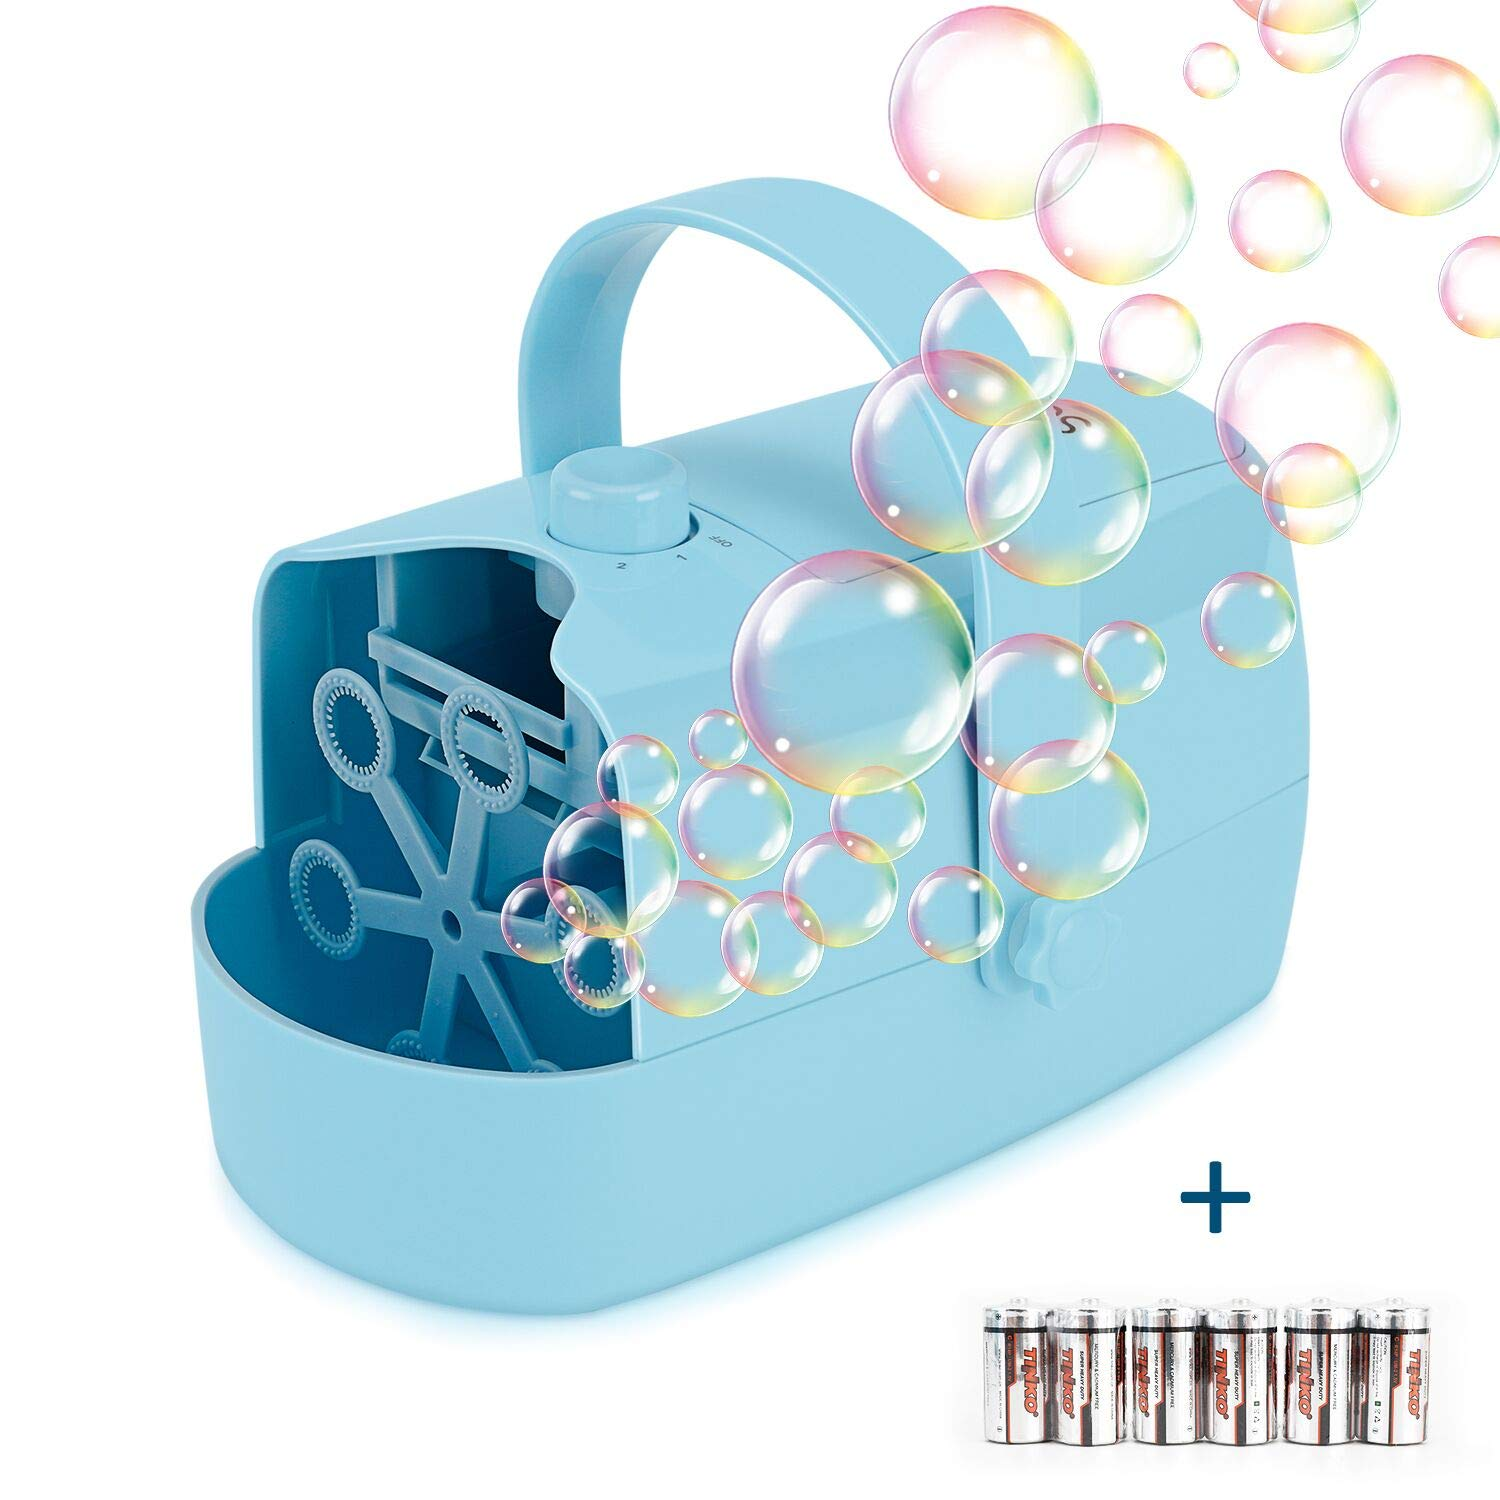 Supkiir Automatic Bubble Machine, Bubble Blower for Kids Powered by Plug-in or Batteries, with Two Bubbles Blowing Speed Levels for Party, Wedding, Outdoor Indoor Toys by Supkiir